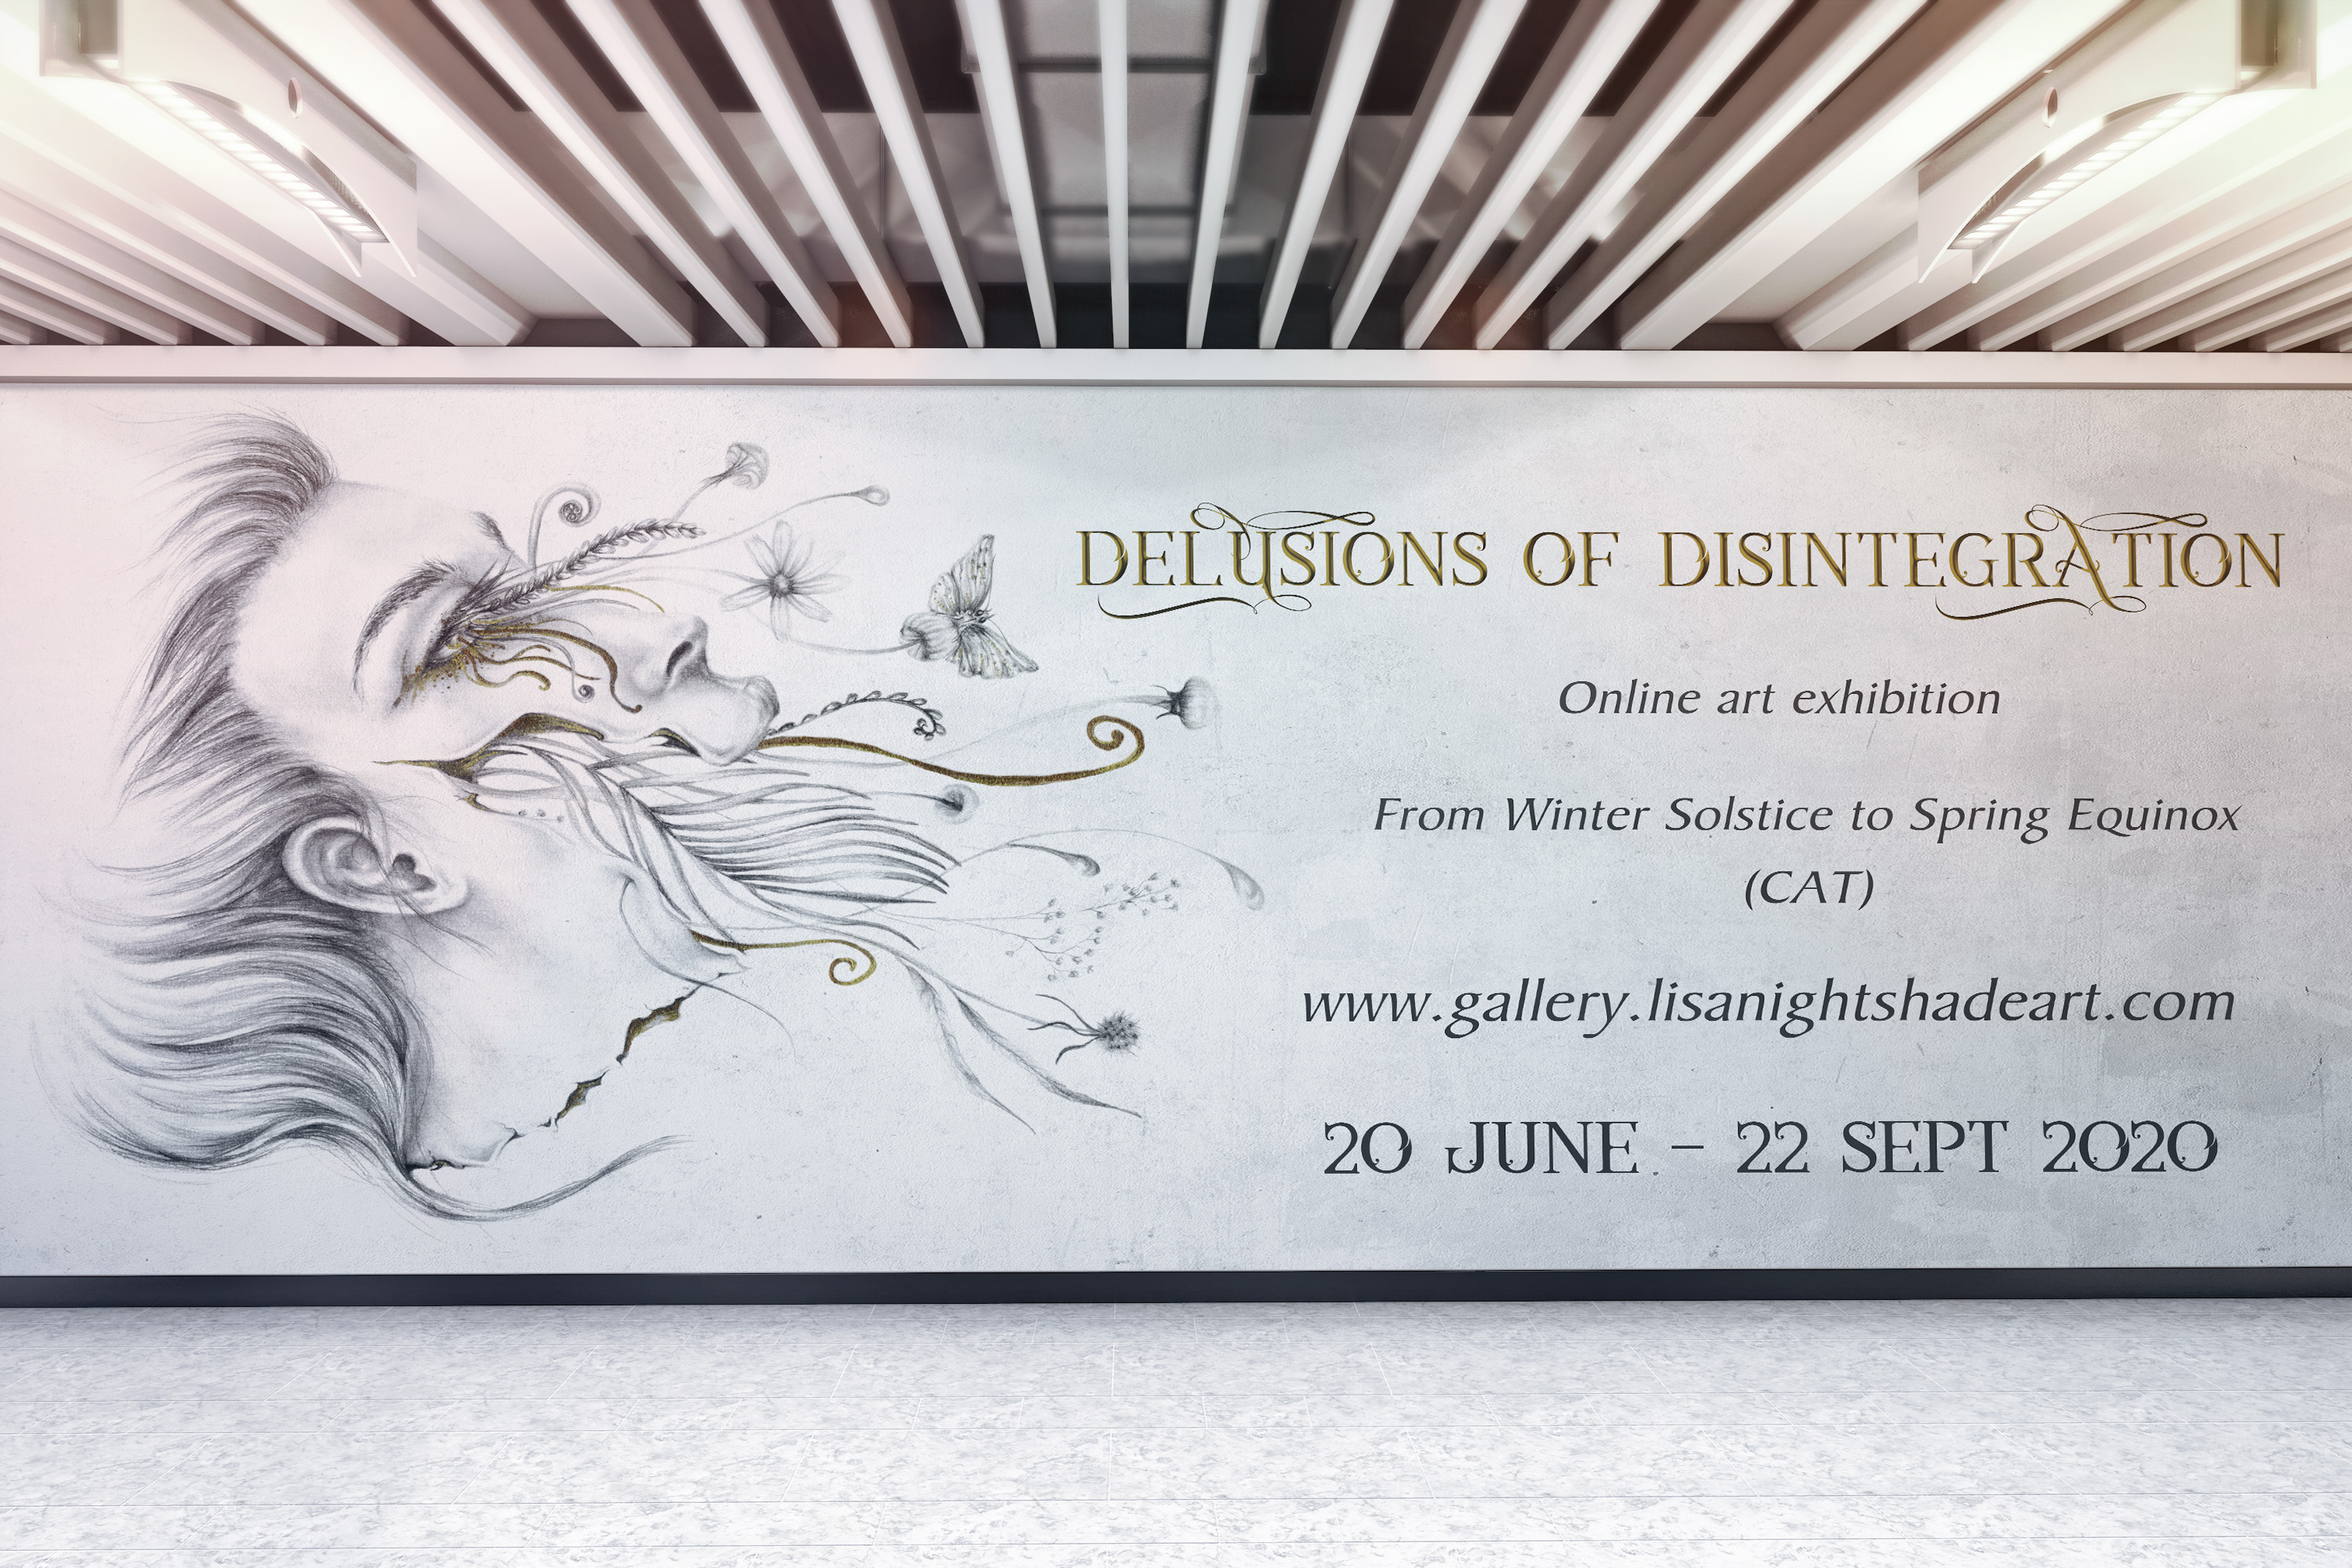 Delusions of Disintegration by Lisa Nightshade